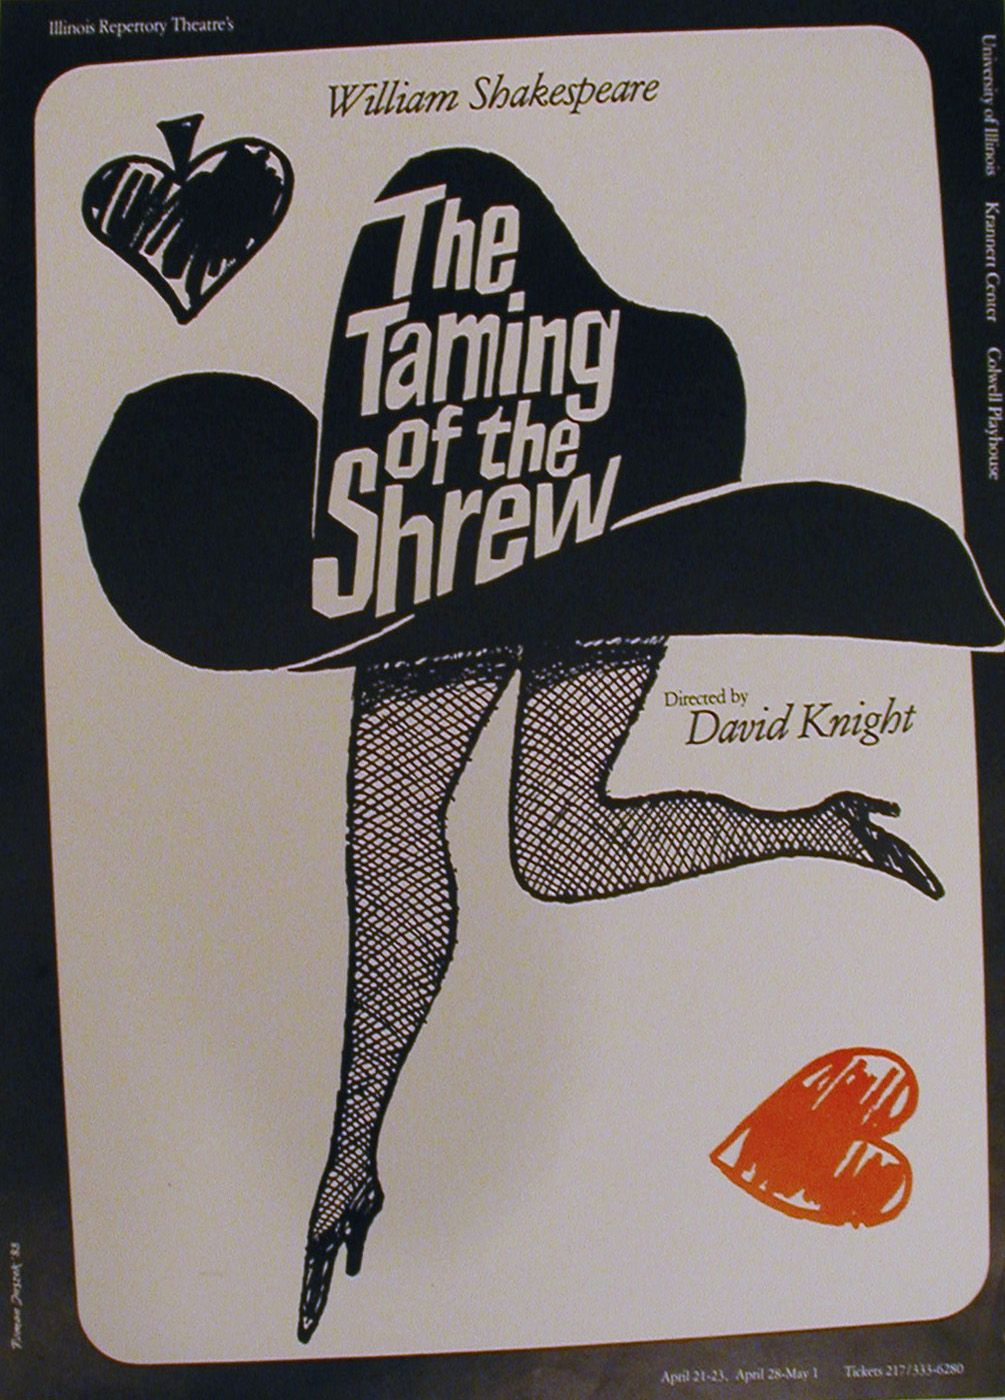 yann legendre the taming of the shrew poster shakespeare polish poster taming of the shrew